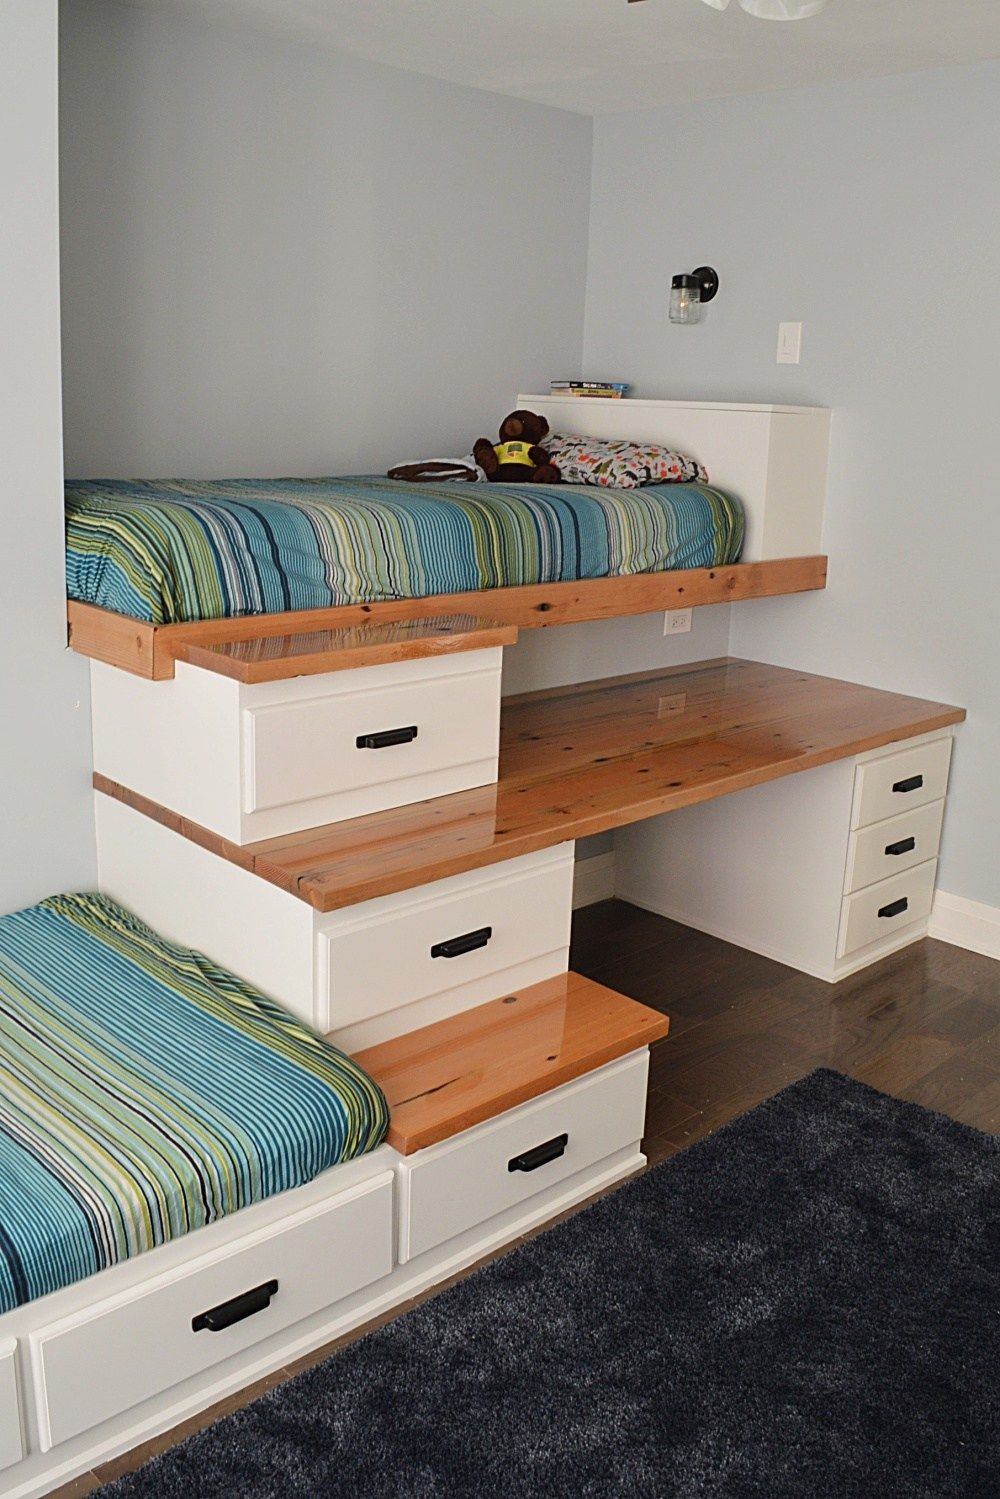 How To Make A Built In Bed With Storage Room Ideas Bedroom Bedroom Design Built In Bed